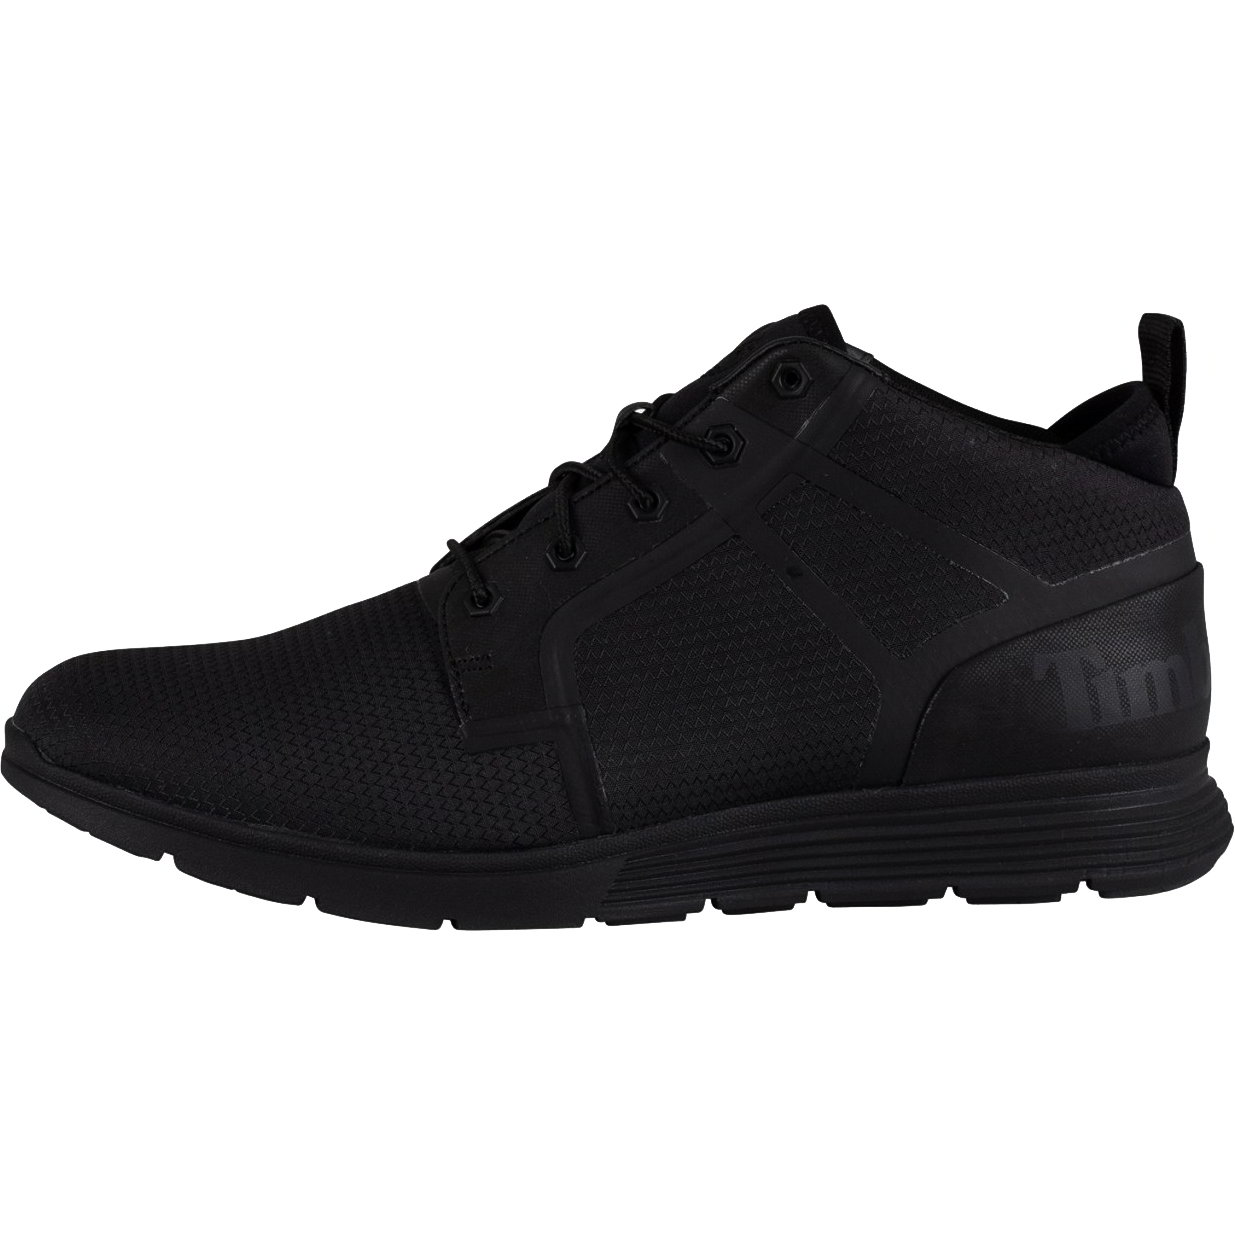 Details zu Timberland Killington Super Oxford Mens Black Mesh Chukka Ankle Boots Size 7 11